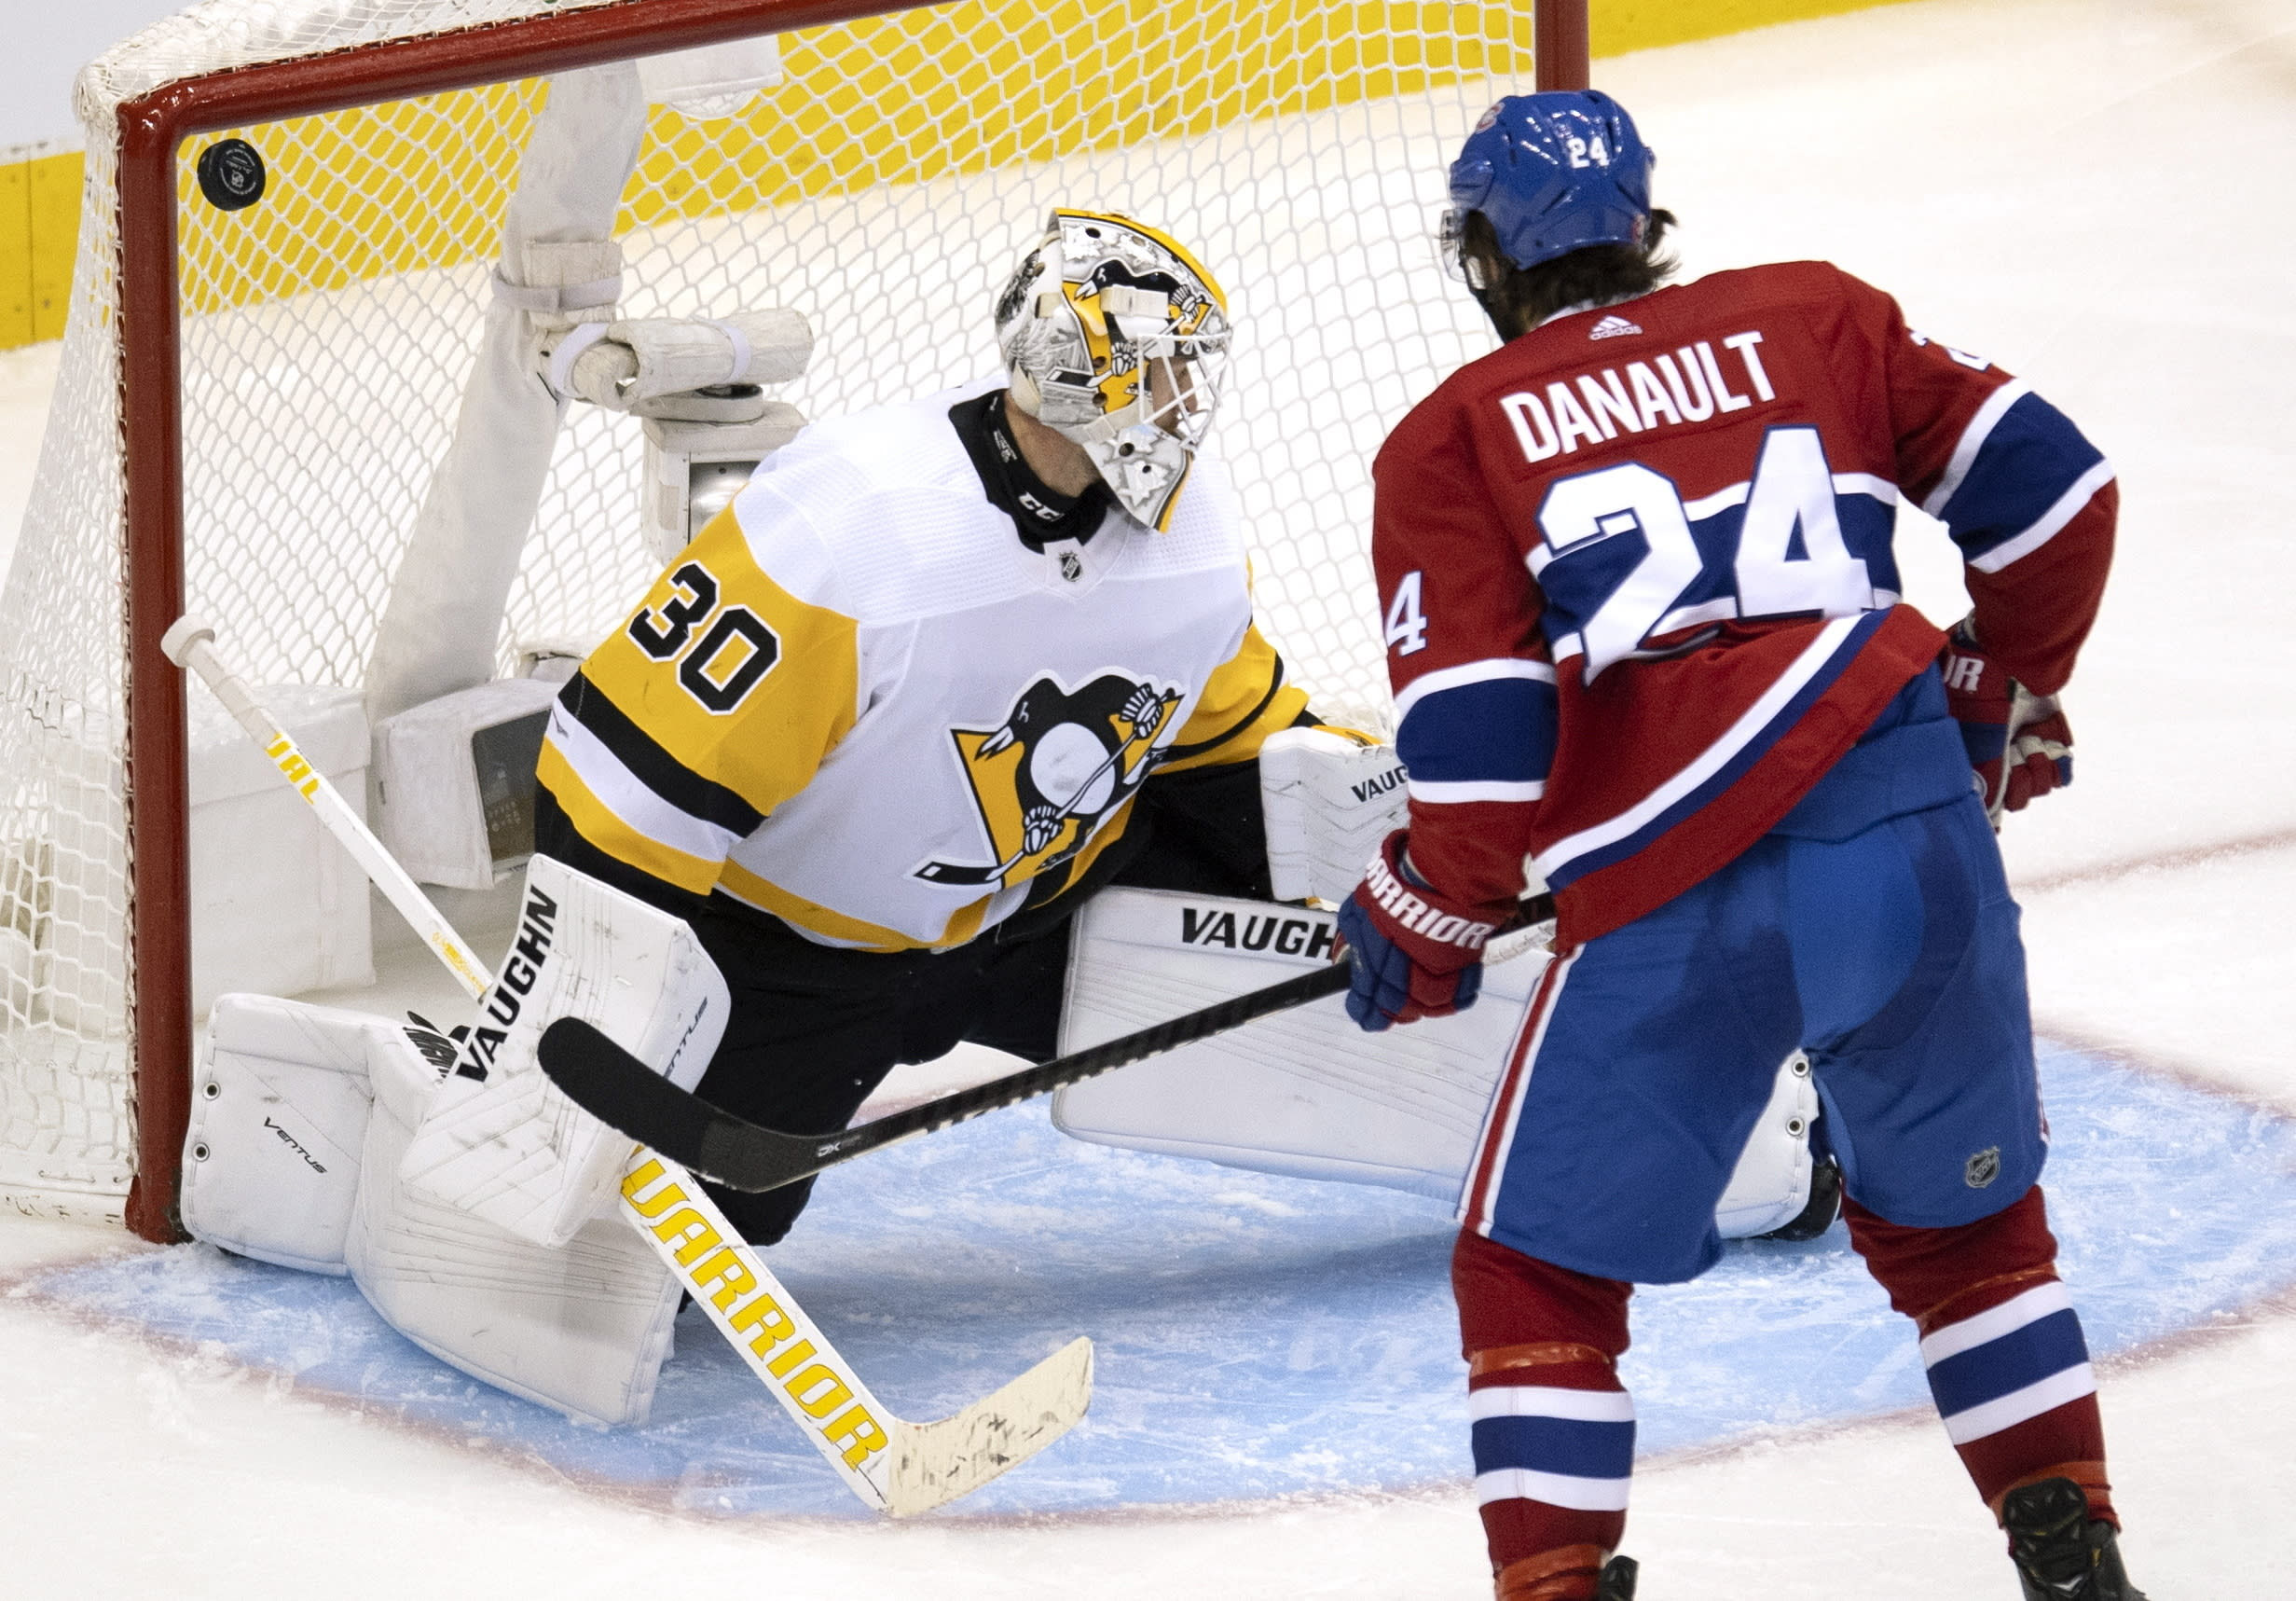 Montreal Canadiens centre Phillip Danault (24) watches as the puck bounces off the post behind Pittsburgh Penguins goaltender Matt Murray (30) during the third period of an NHL hockey playoff game Wednesday, Aug. 5, 2020 in Toronto. (Frank Gunn/The Canadian Press via AP)